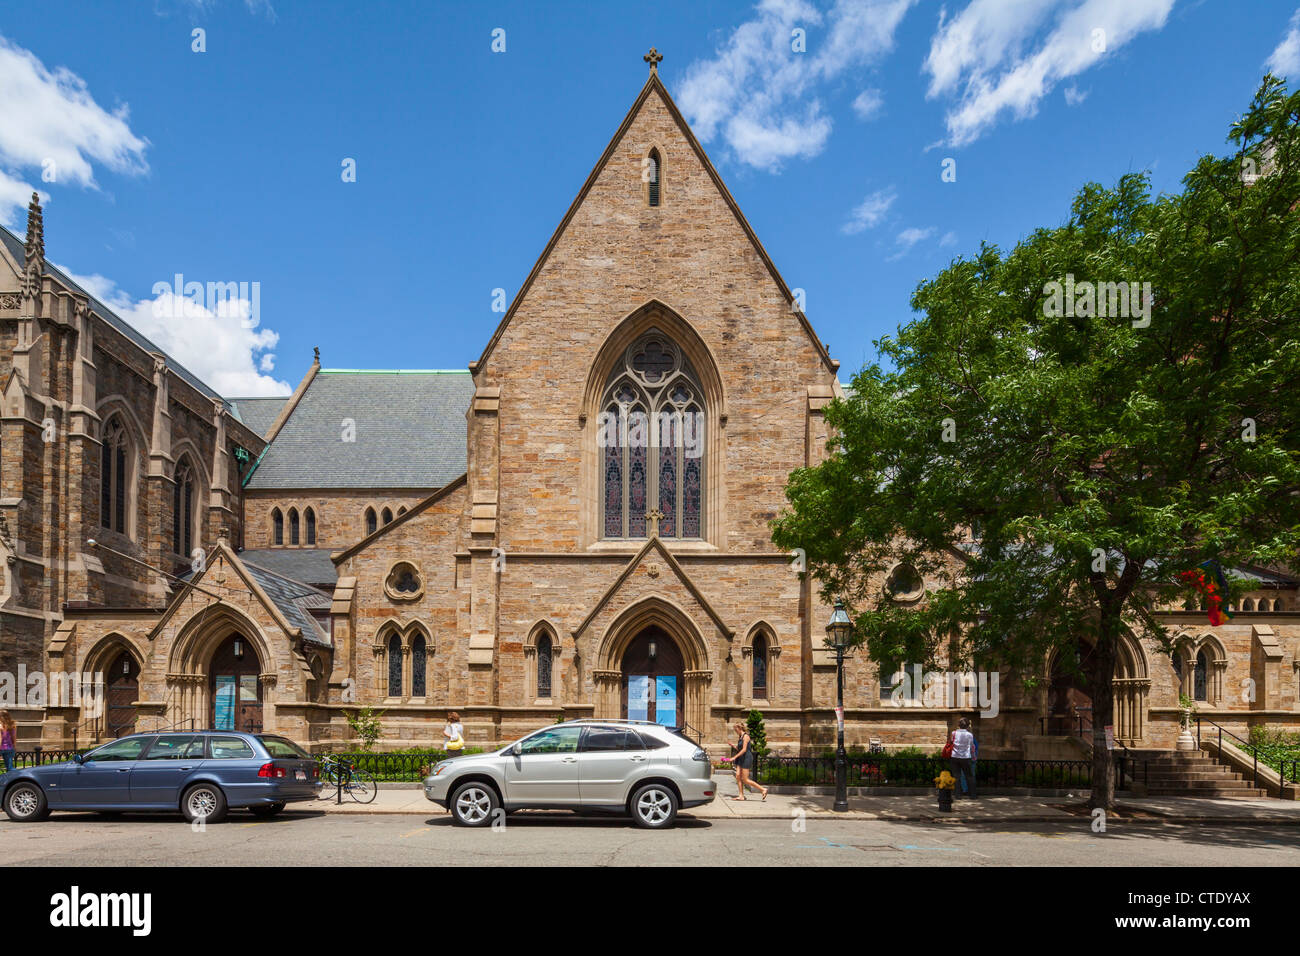 Emmanuel Episcopal Church, Boston - Stock Image